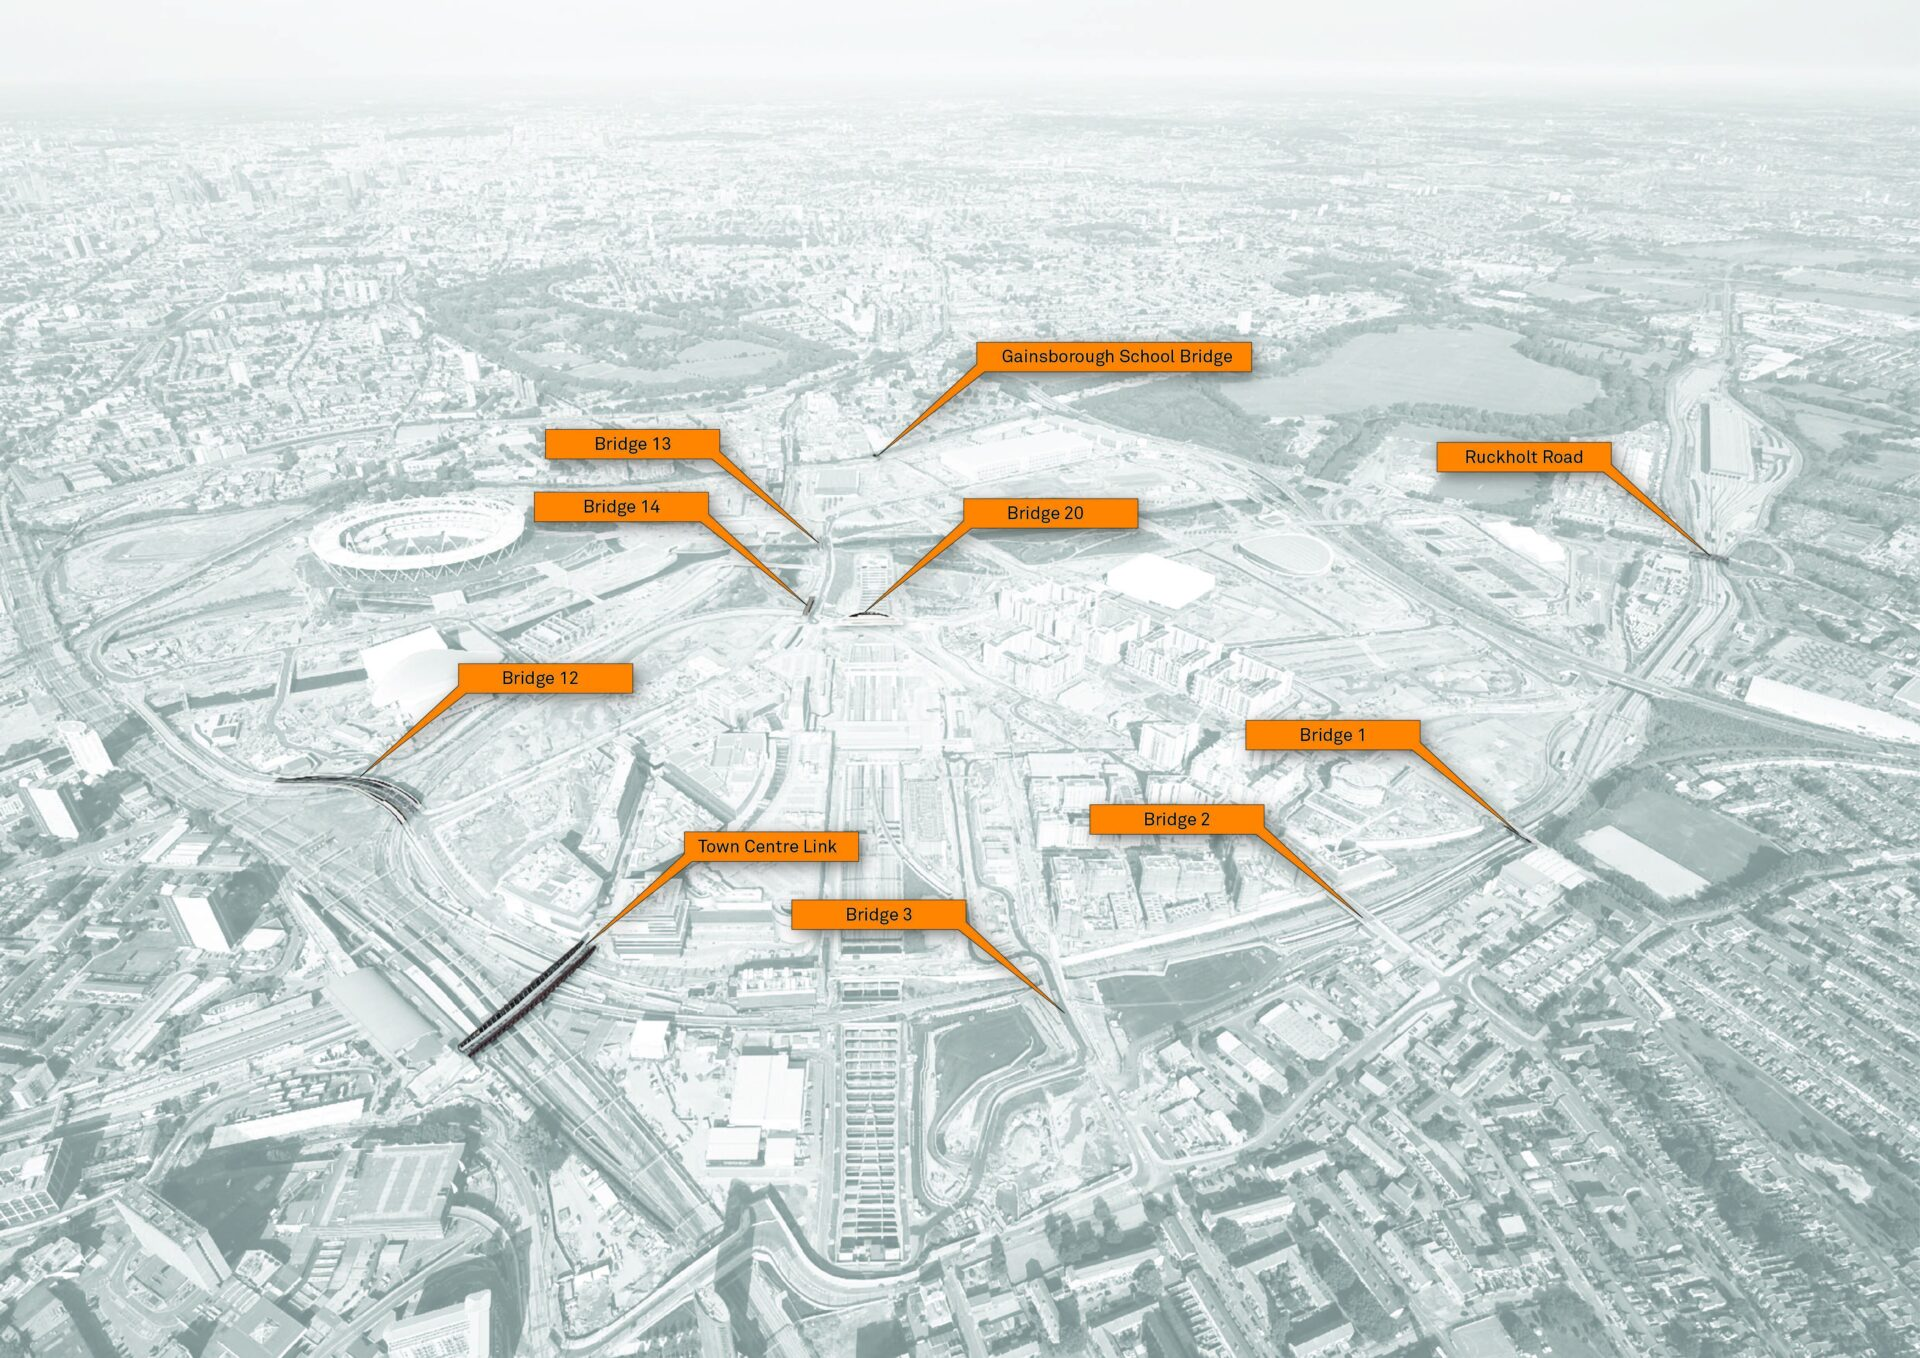 Aerial view of Olympic Park with orange Knight Architects bridge markers